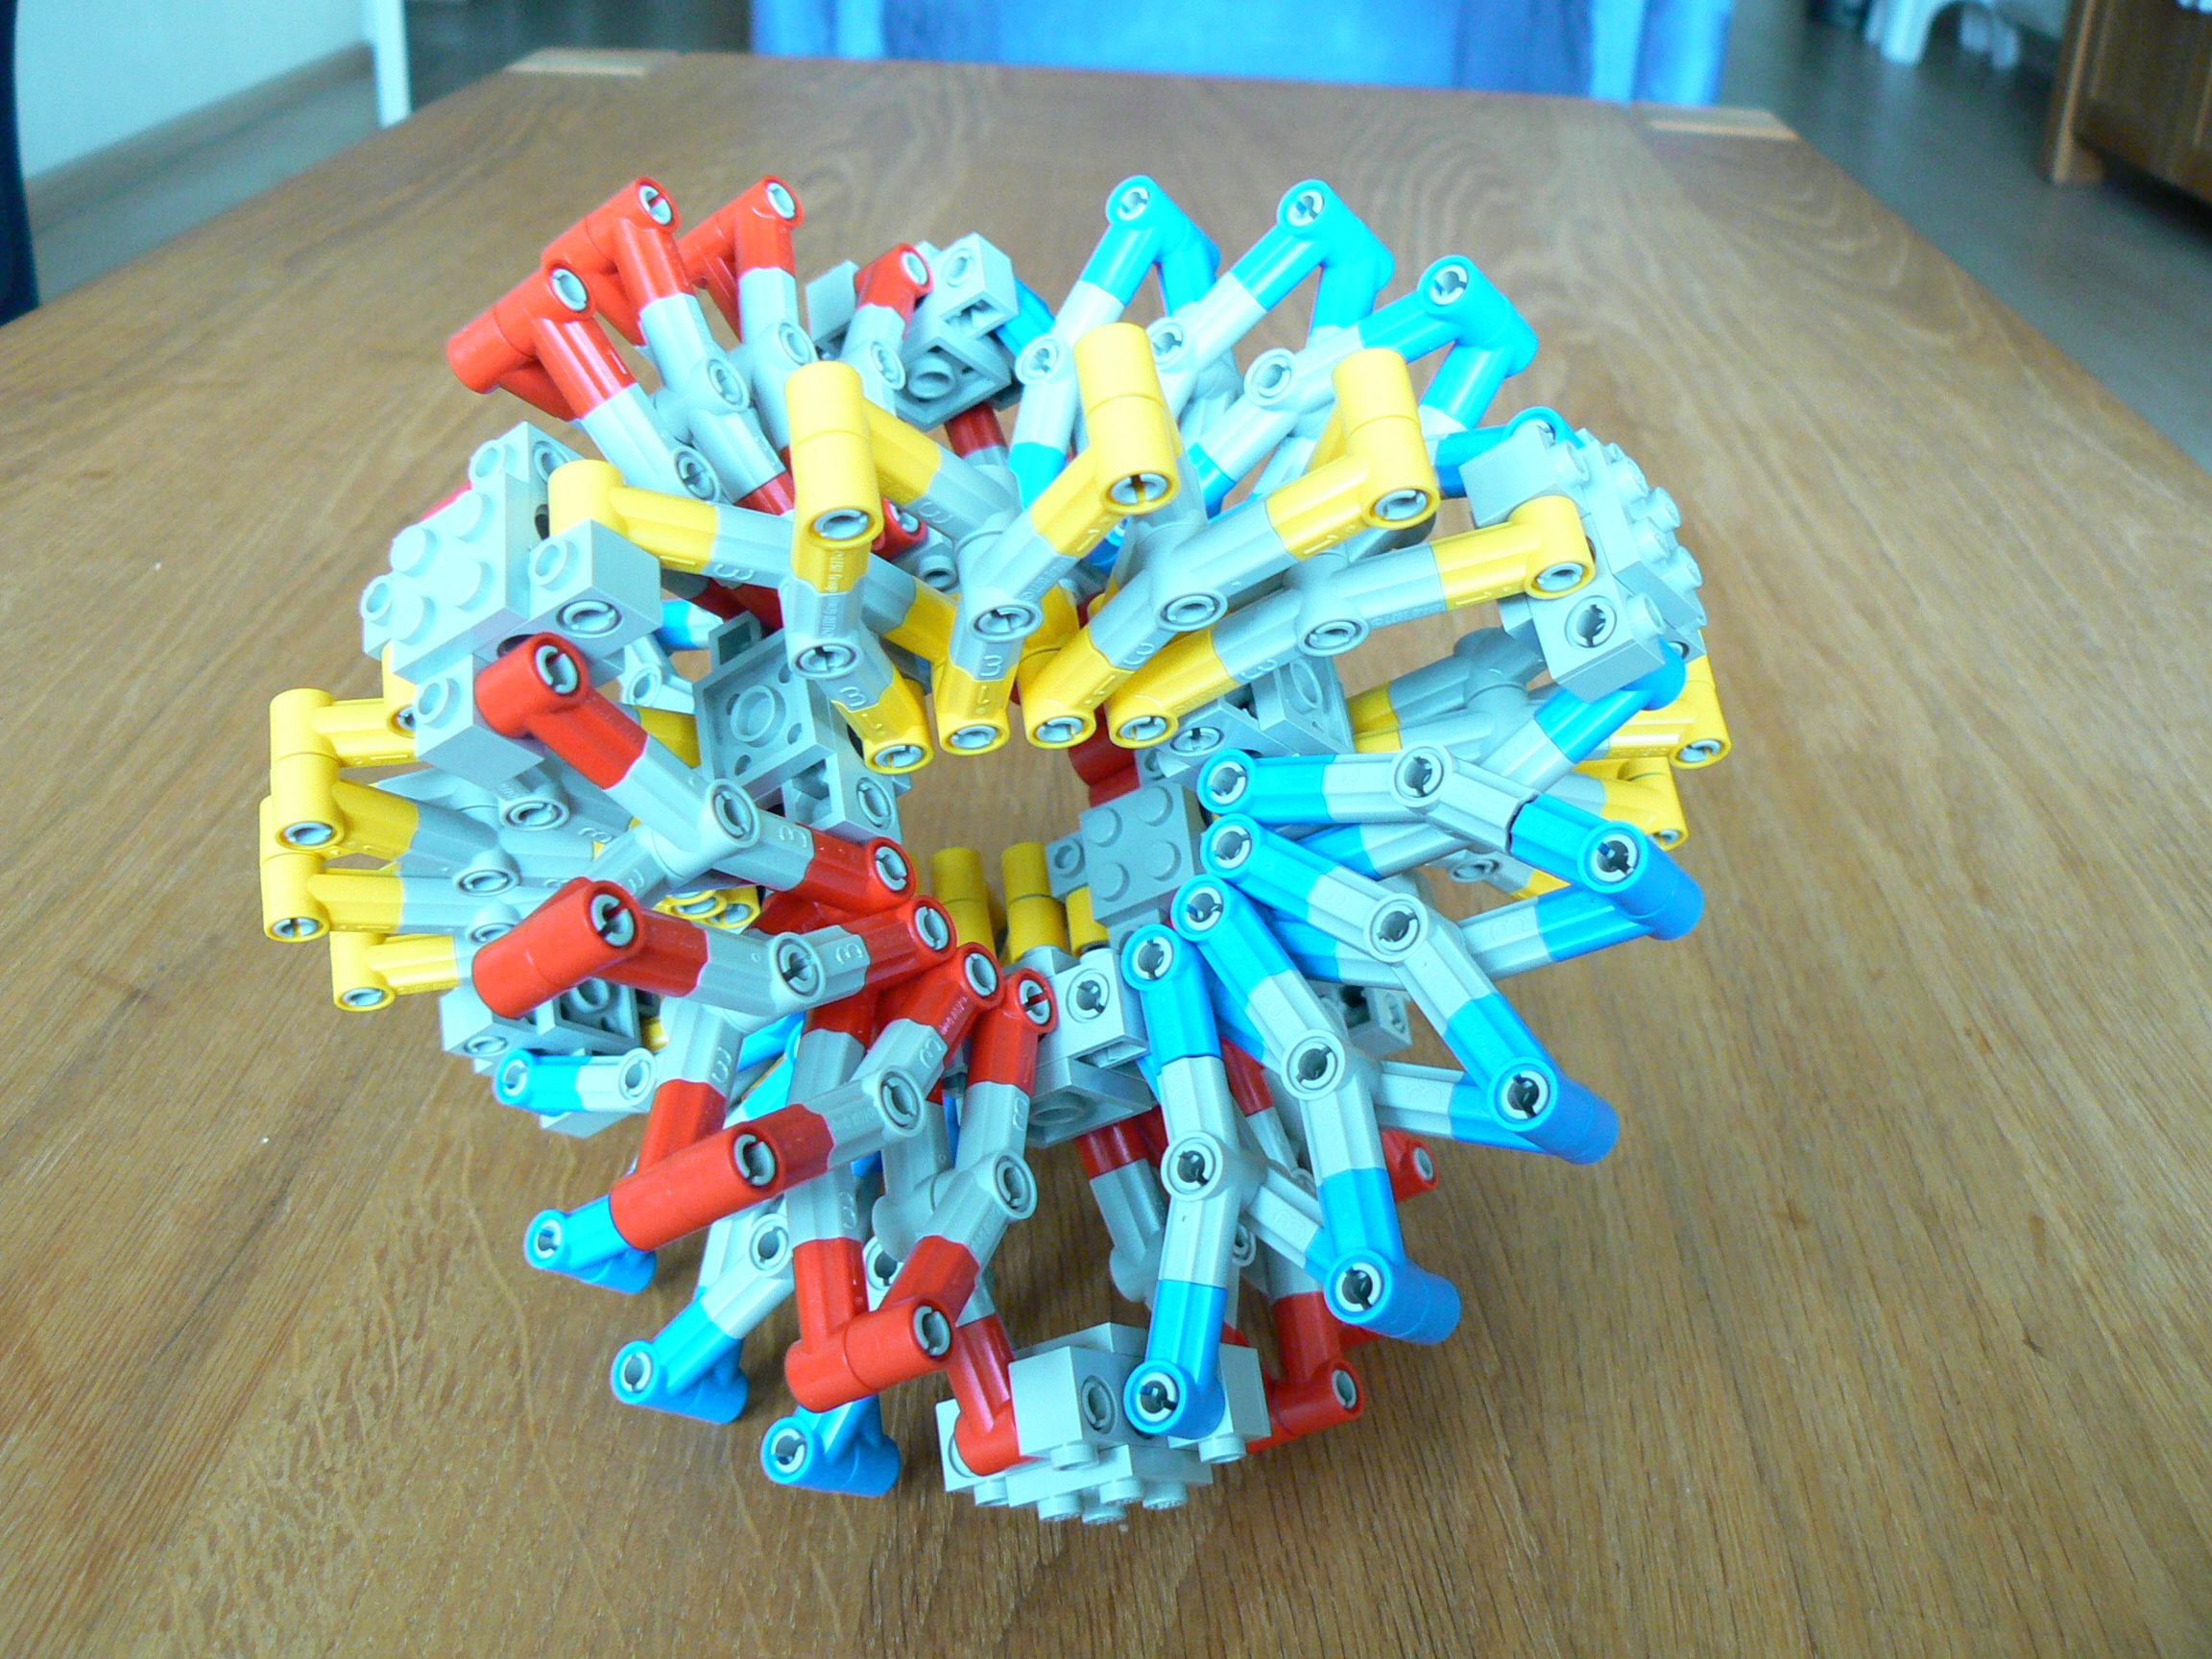 hoberman_sphere01.jpg